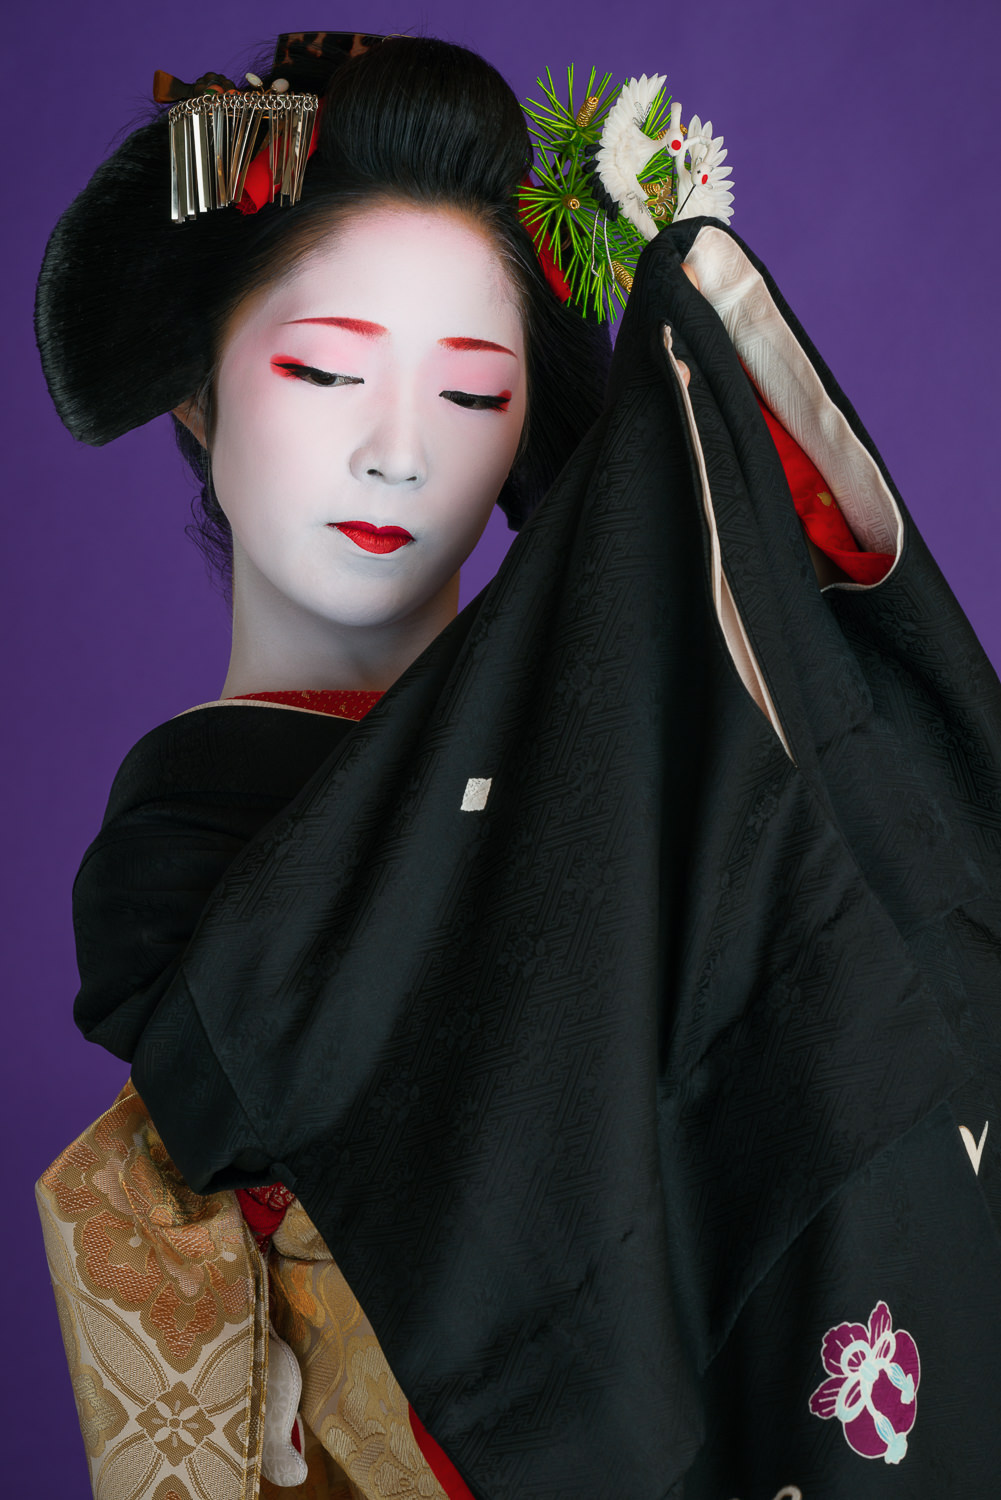 The maiko Toshikana performing the dance  Kurokami  a week before she became a geisha